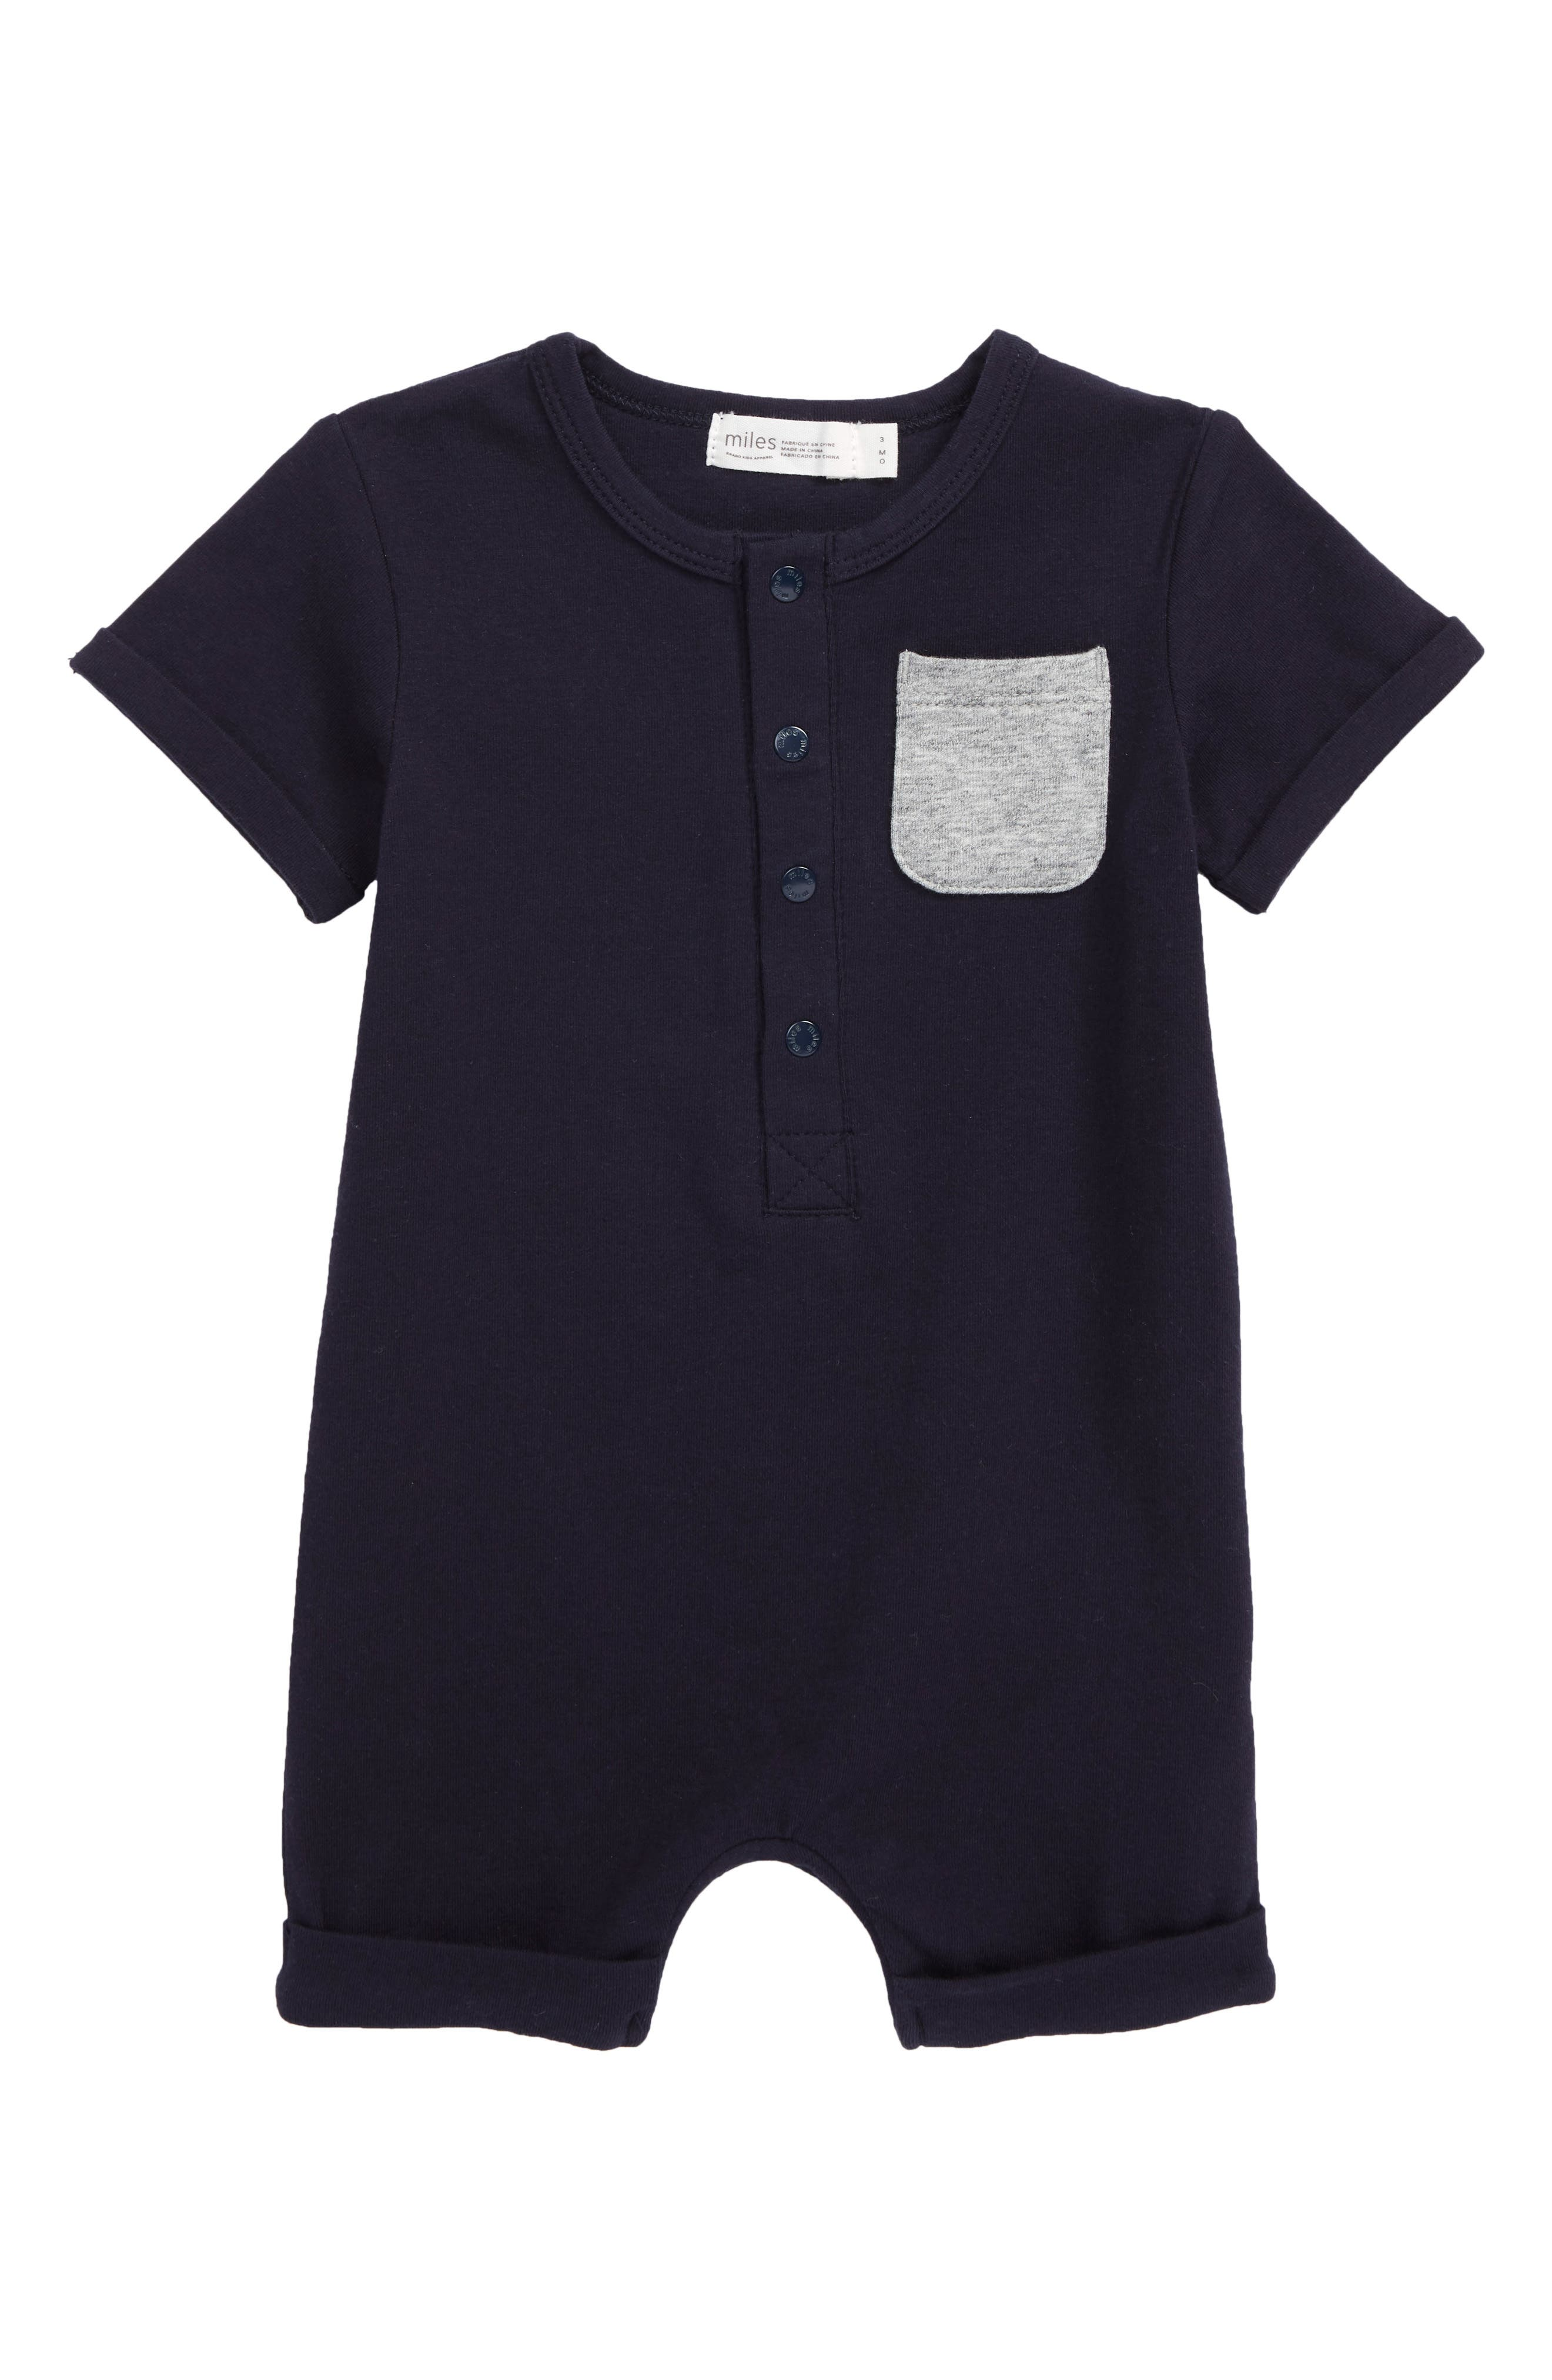 Made from soft stretch cotton, this romper with a contrast patch pocket at the chest is ready for playtime. Style Name: Miles Baby Pocket Romper (Baby). Style Number: 6019912. Available in stores.